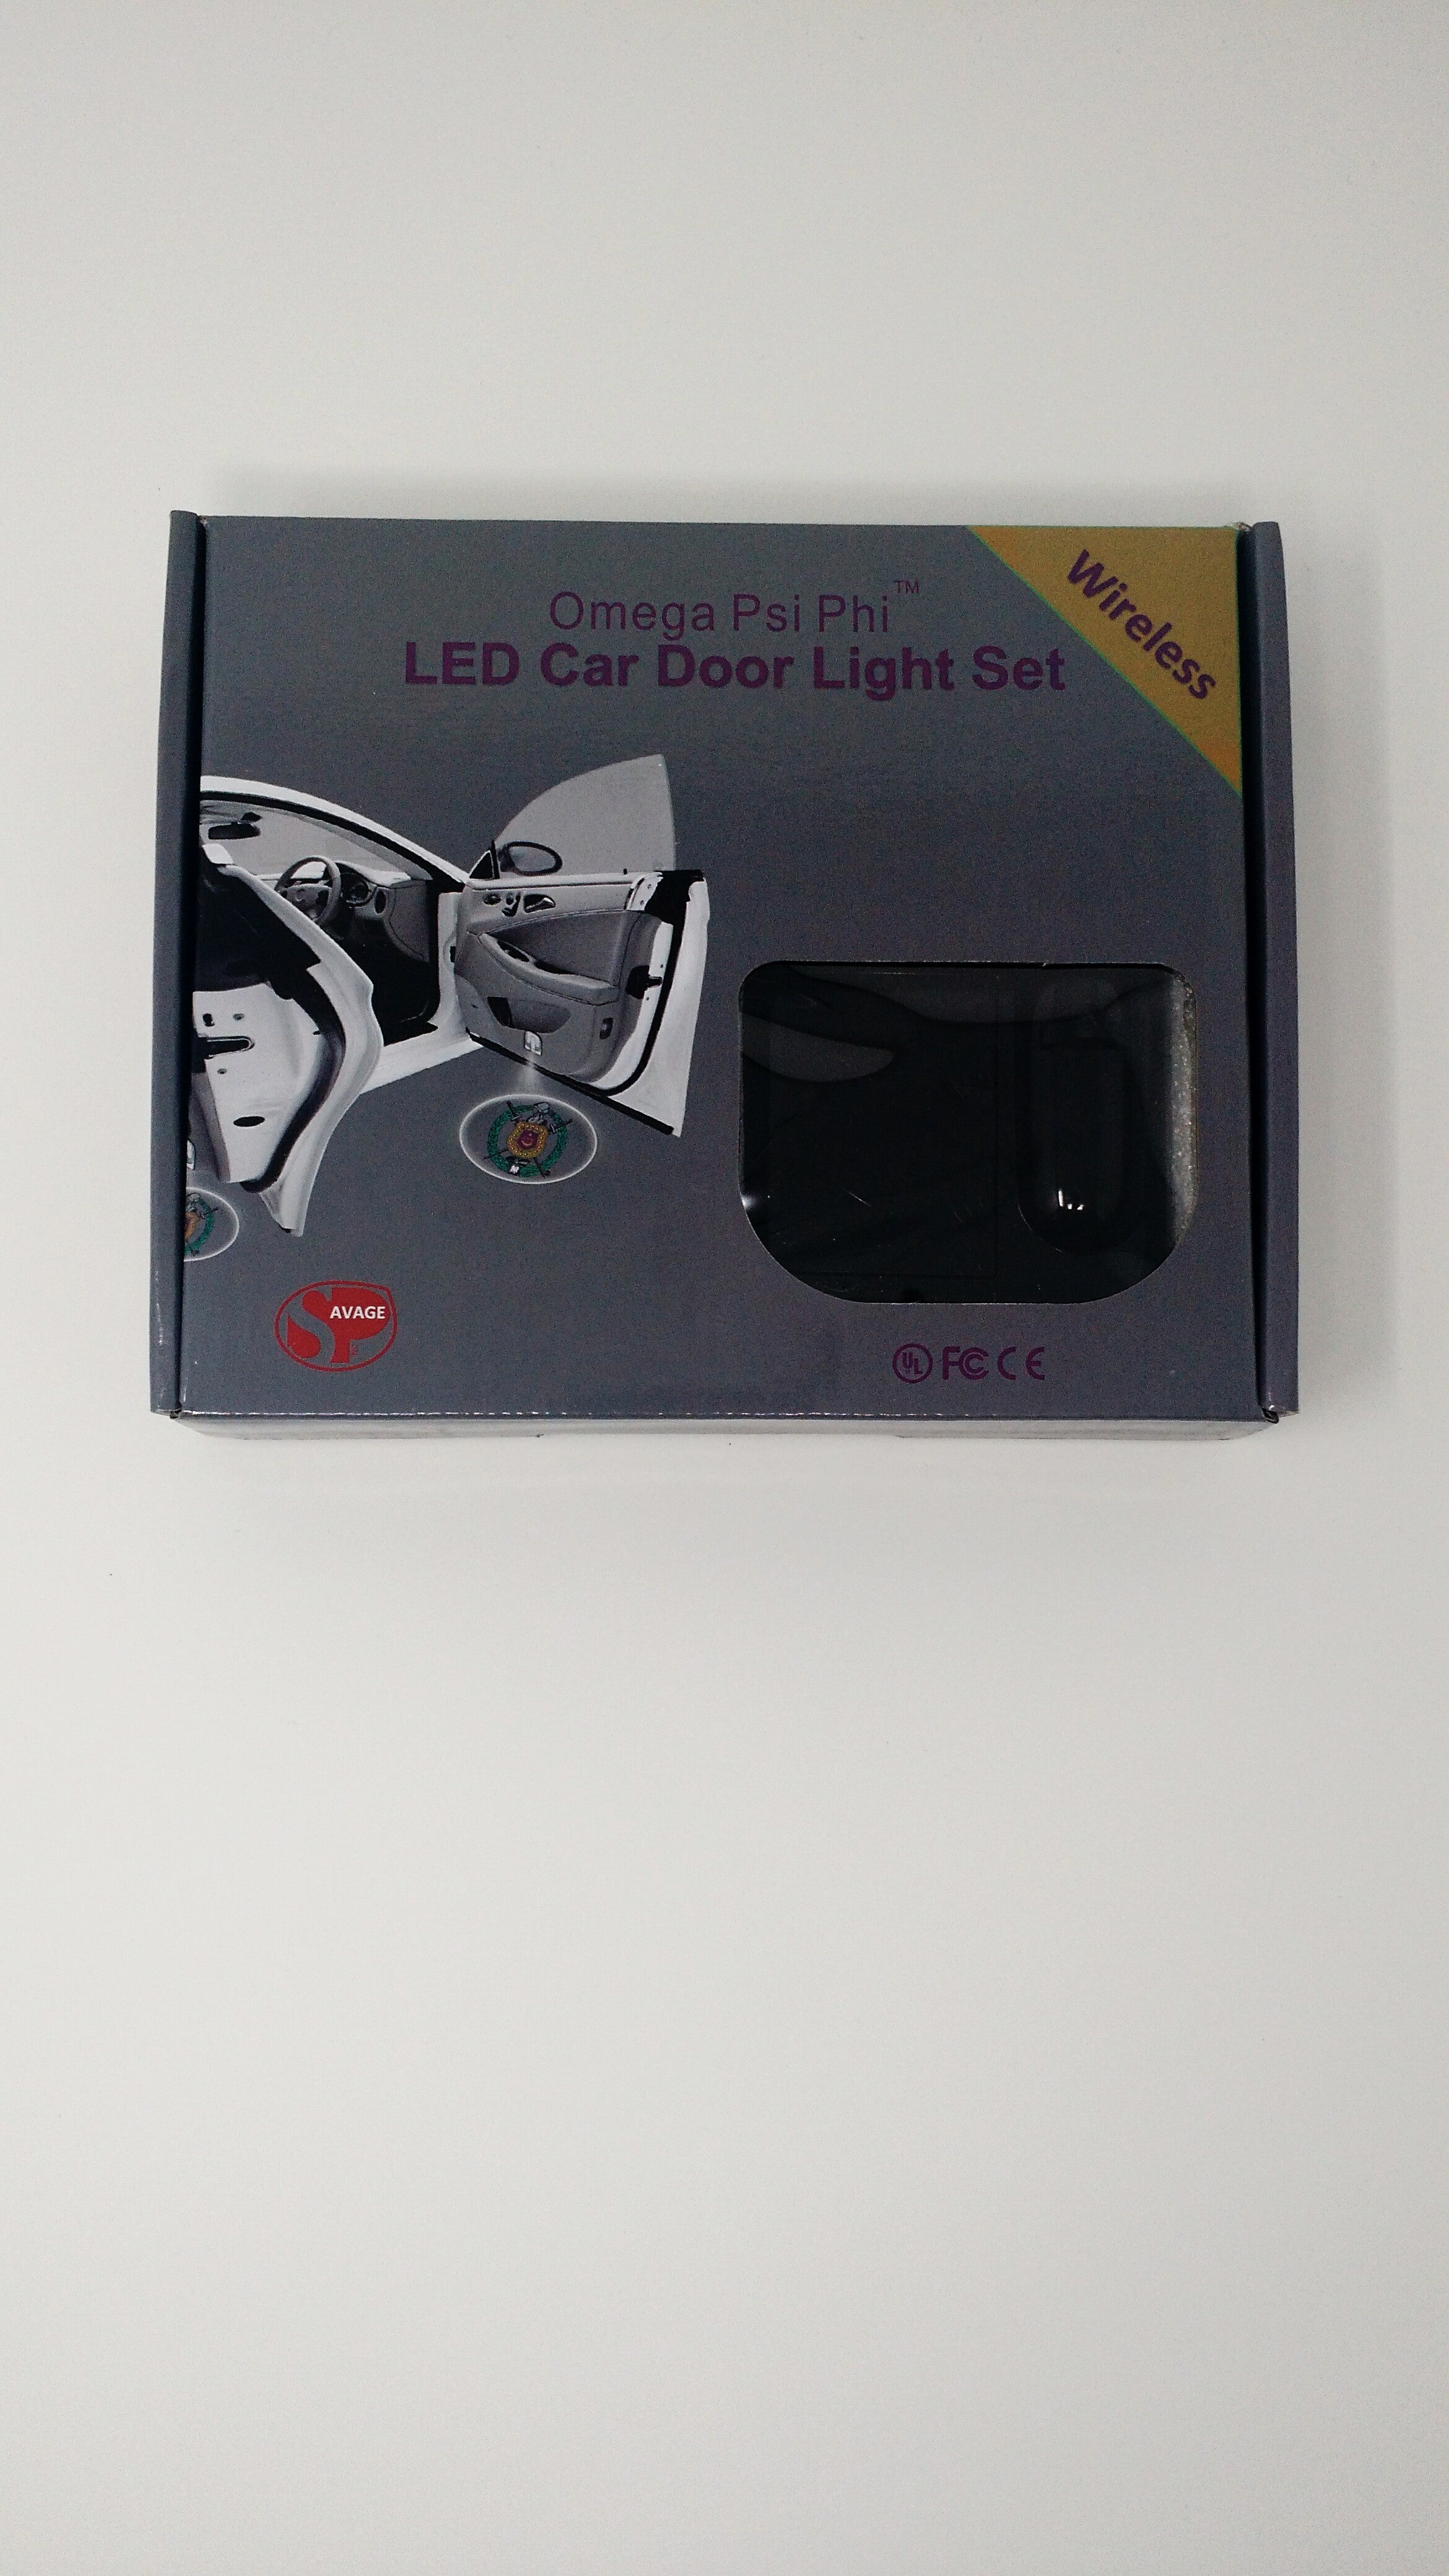 Omega Psi Phi LED Car Door Light